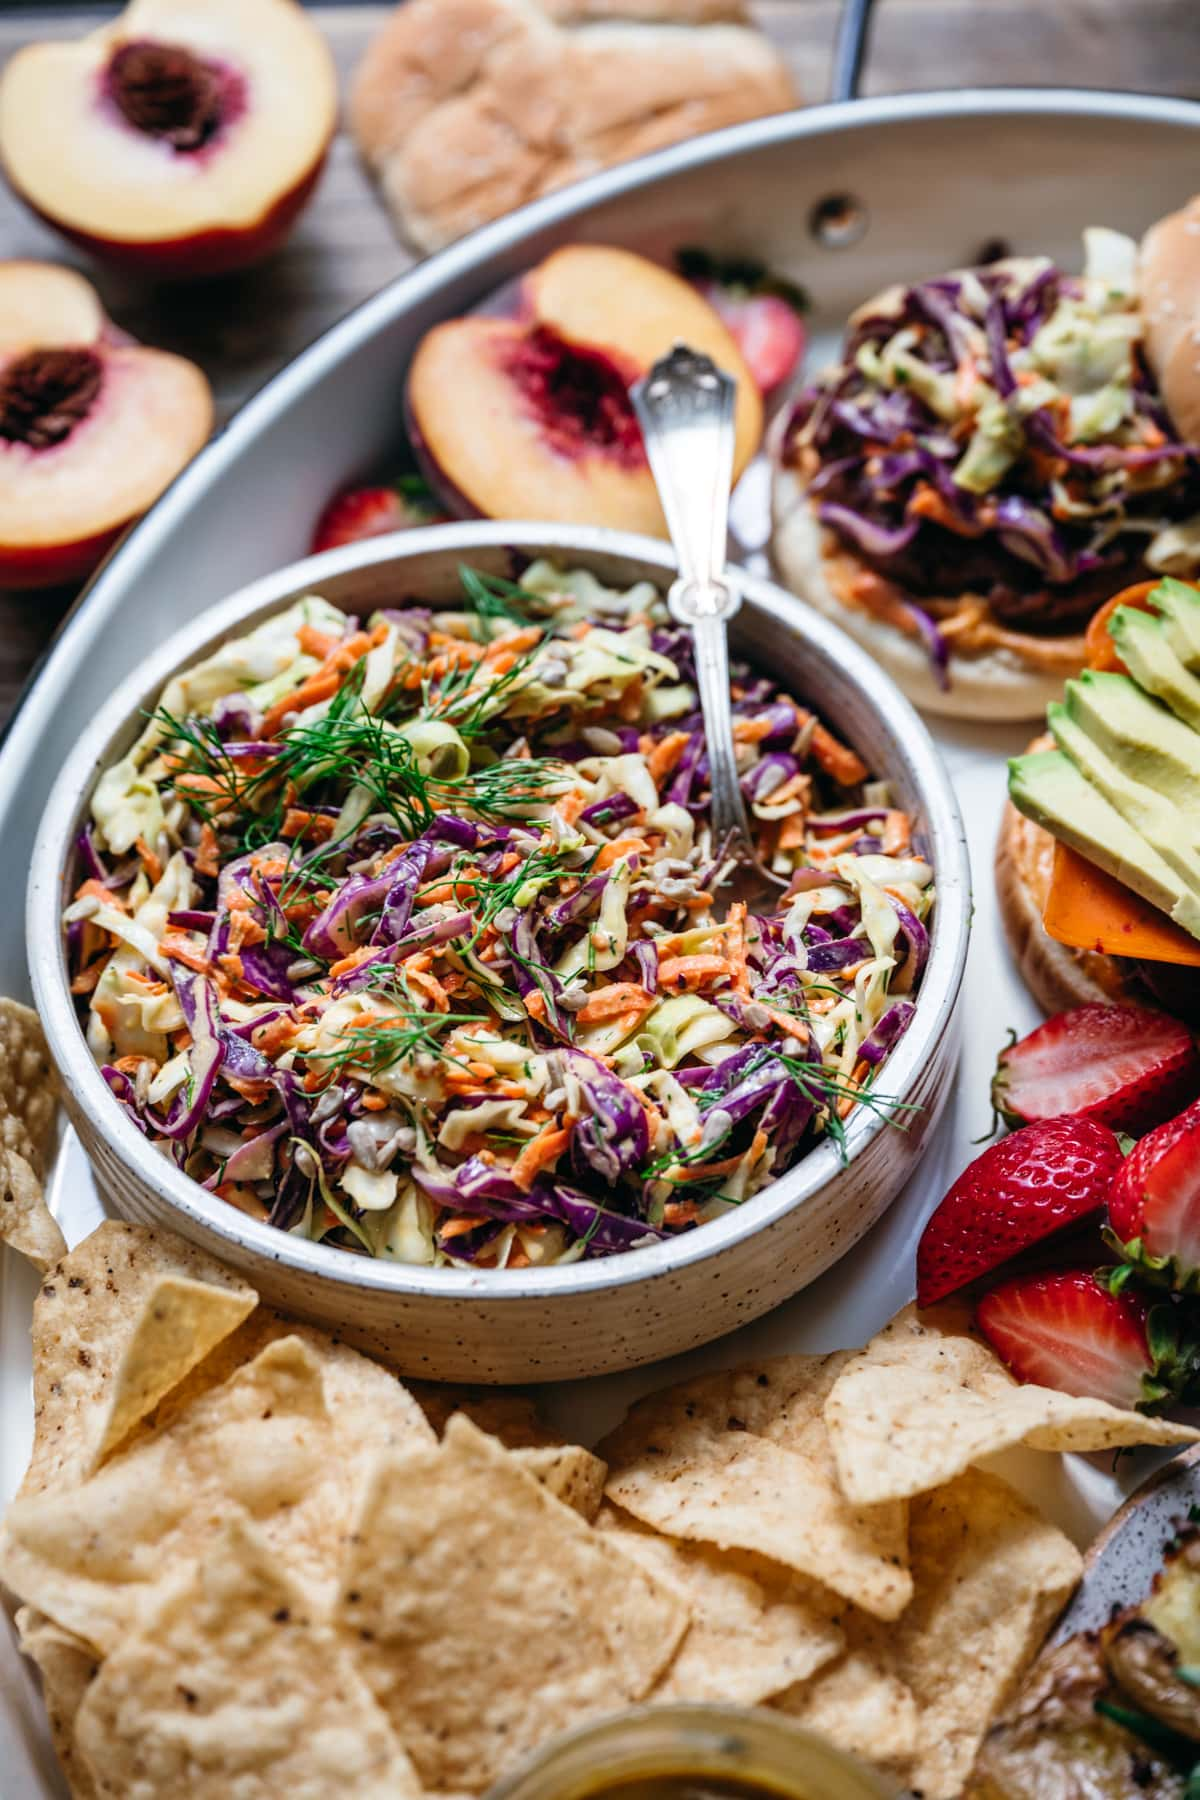 side view of classic vegan coleslaw in white bowl surrounded by tortilla chips and veggie burgers.